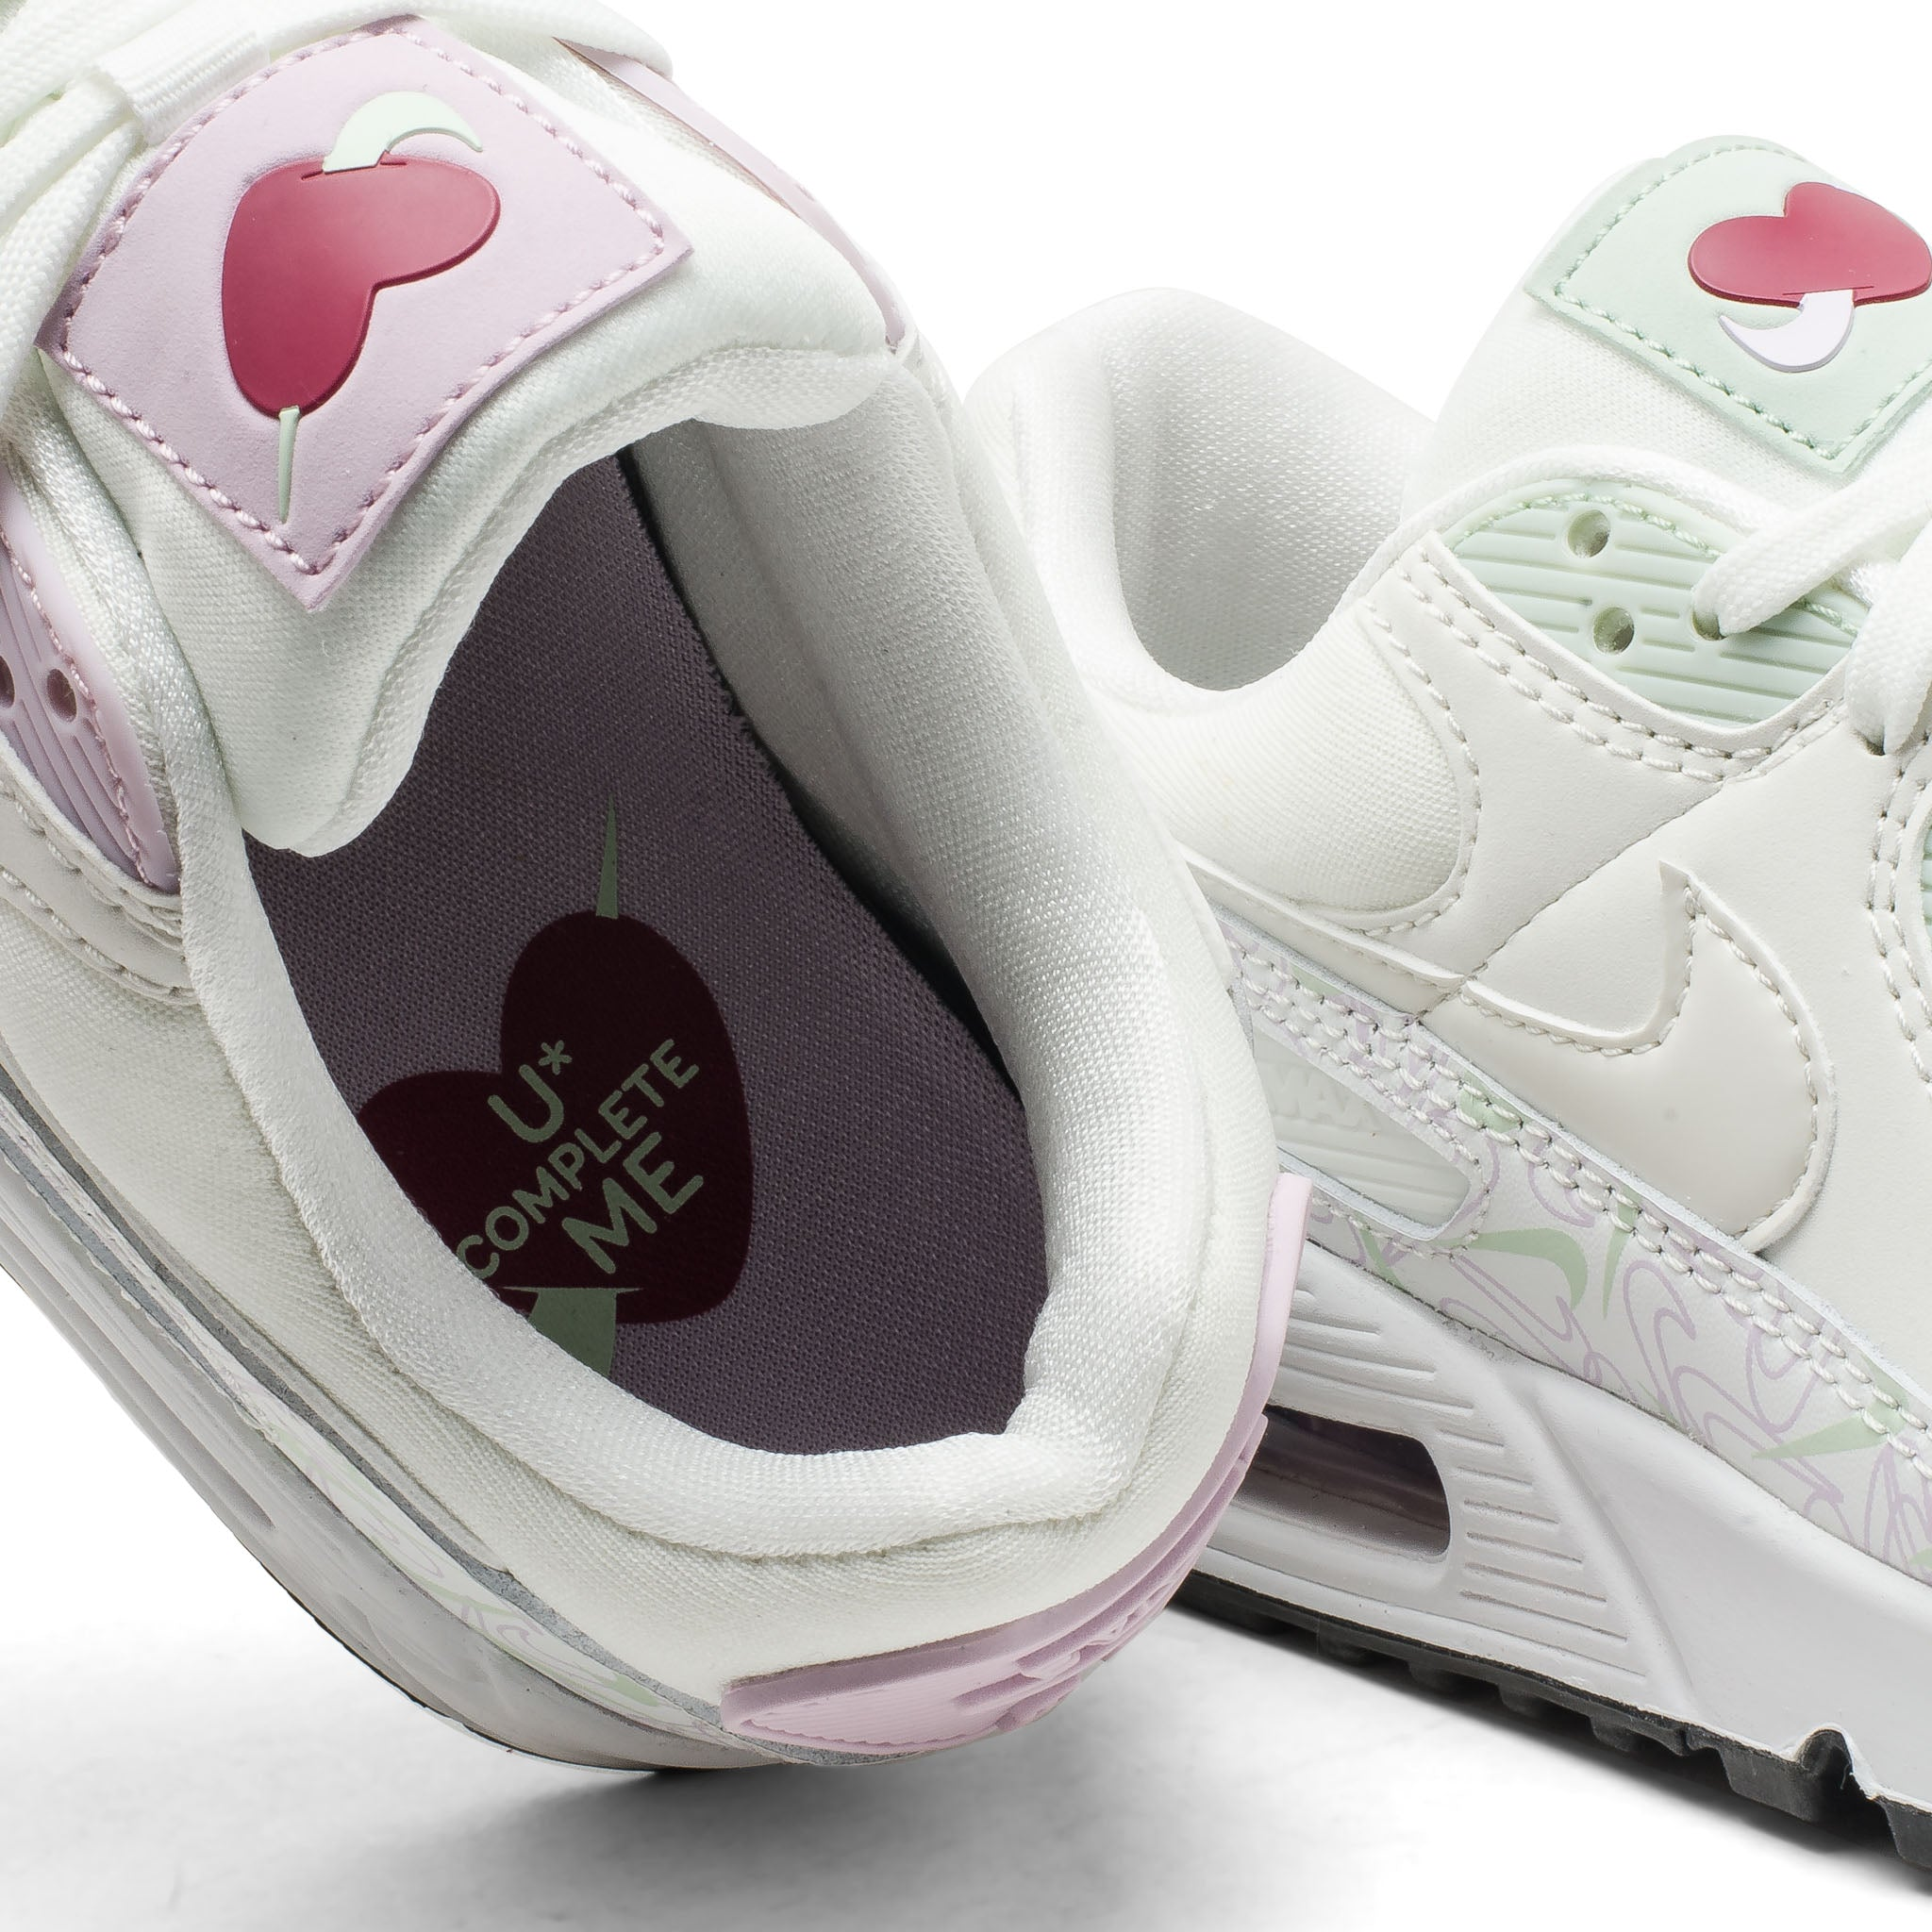 Wmns Air Max 90 VDAY CI7395-100 White